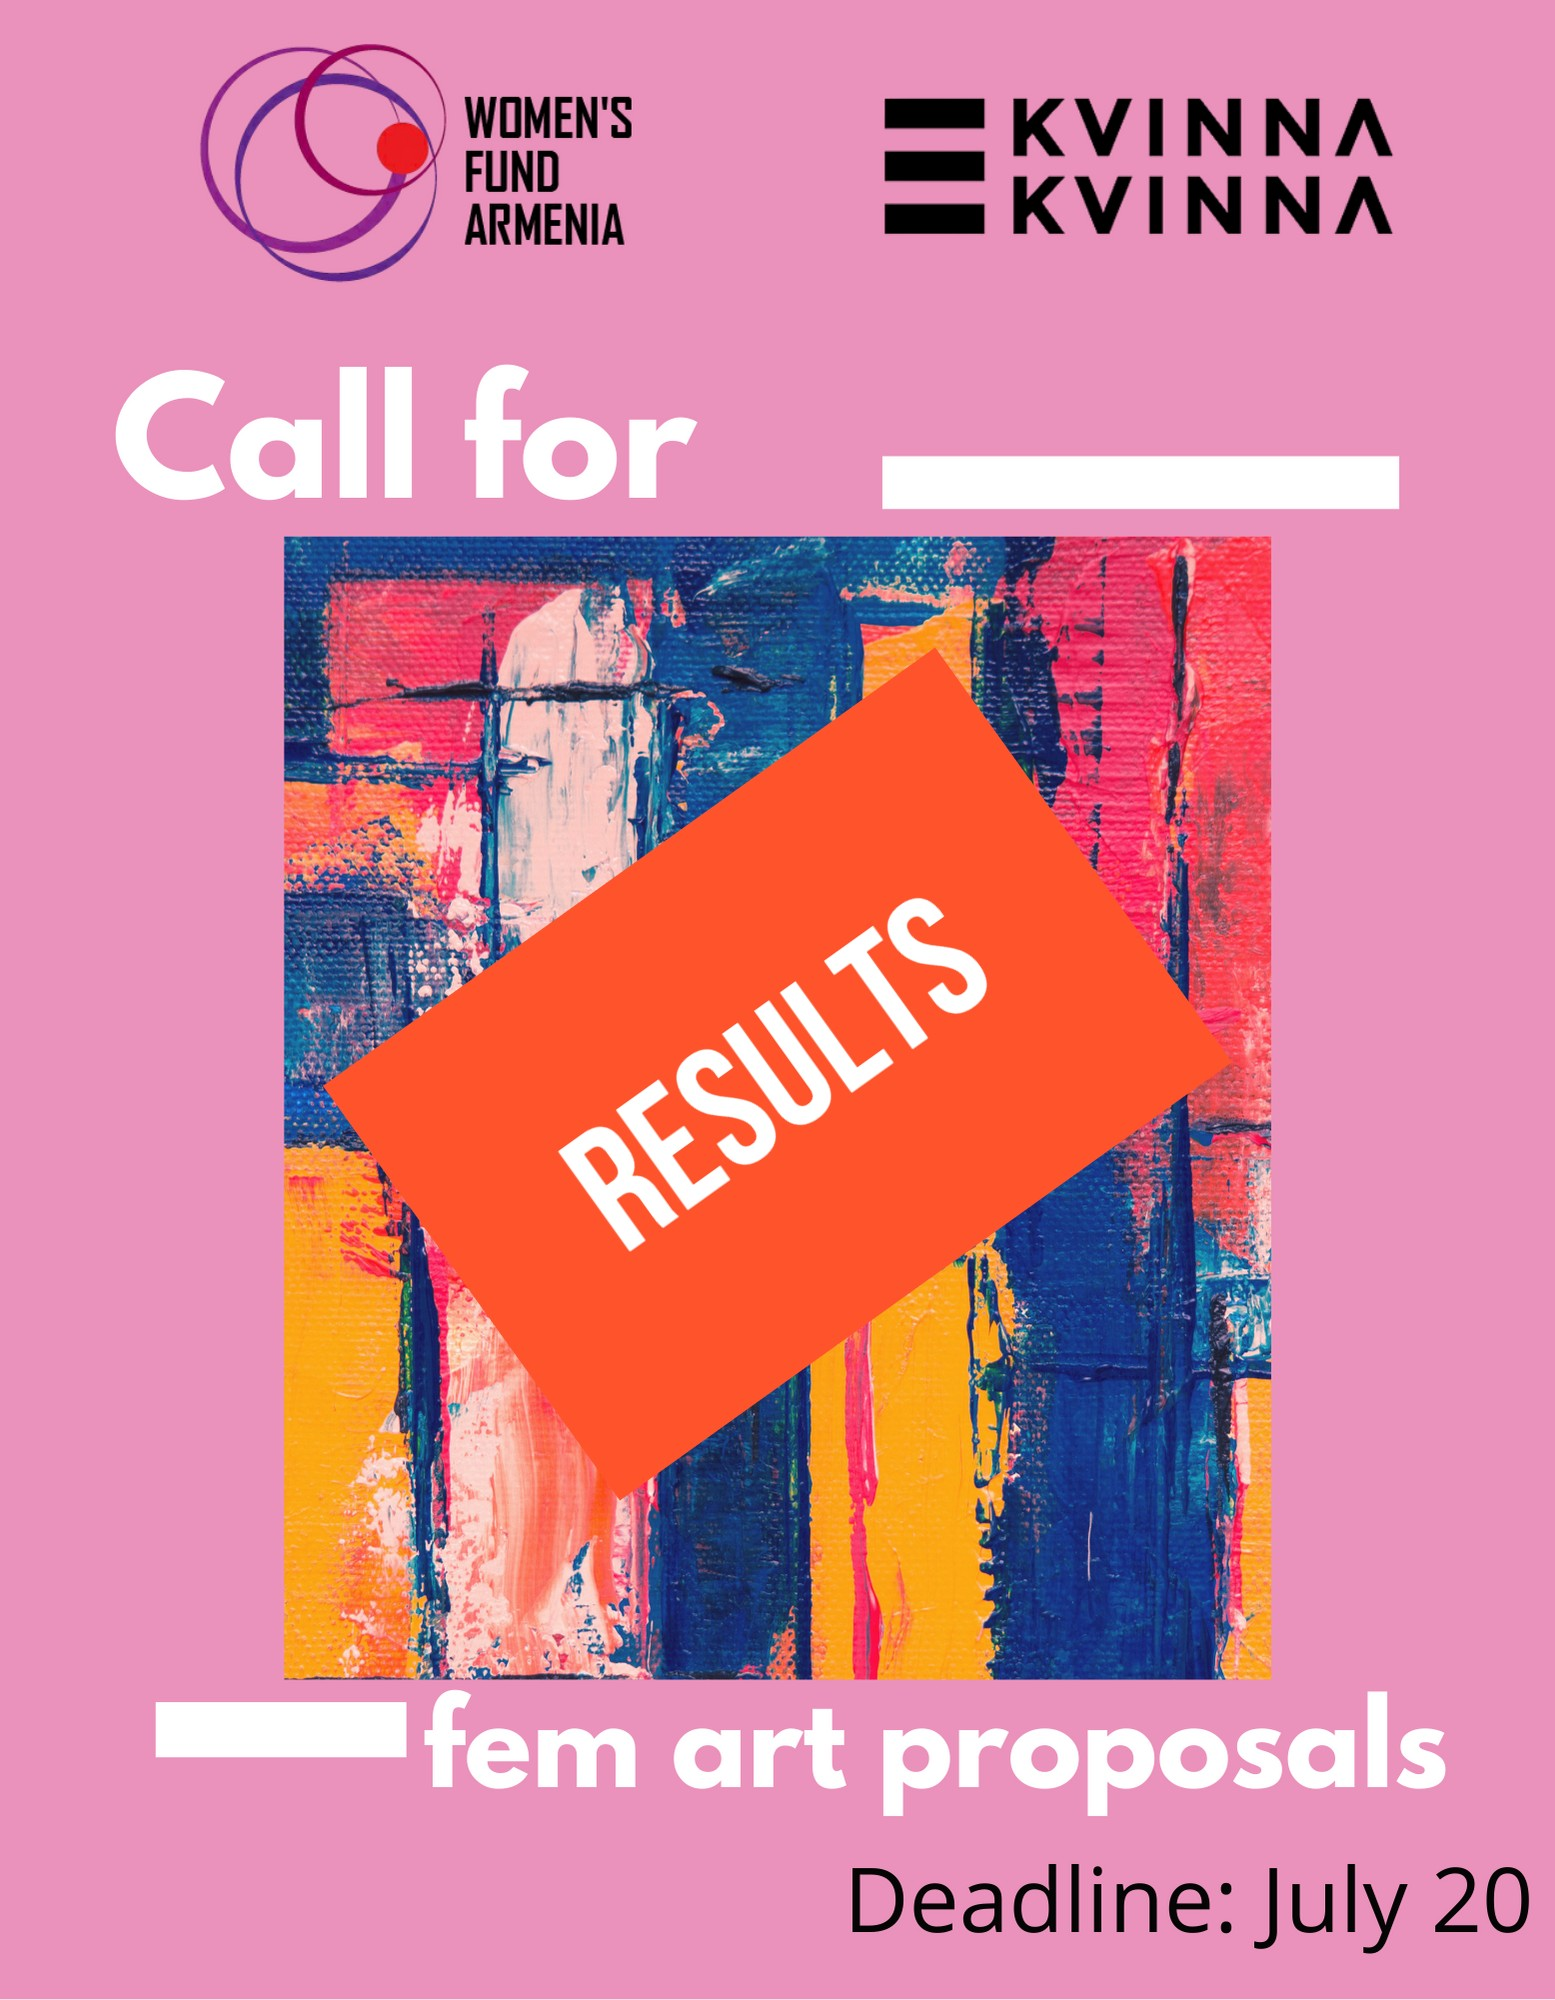 Results of the call for feminist art project proposals